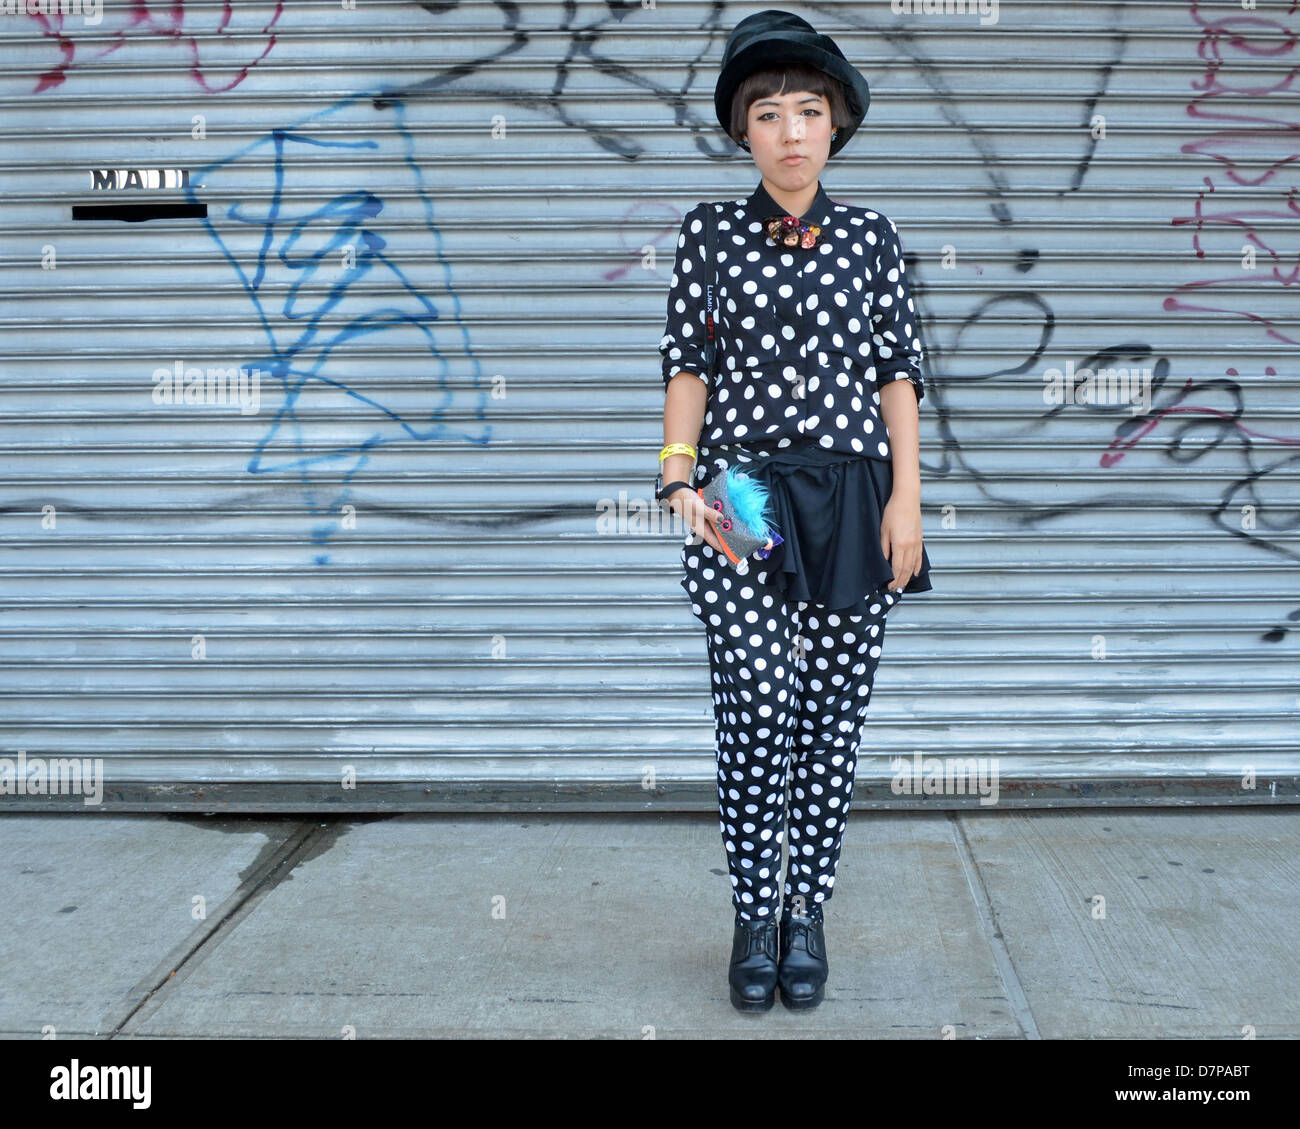 Portrait of a woman in a polka dot suit in front of a grating with graffiti in Long Island City, New York. - Stock Image